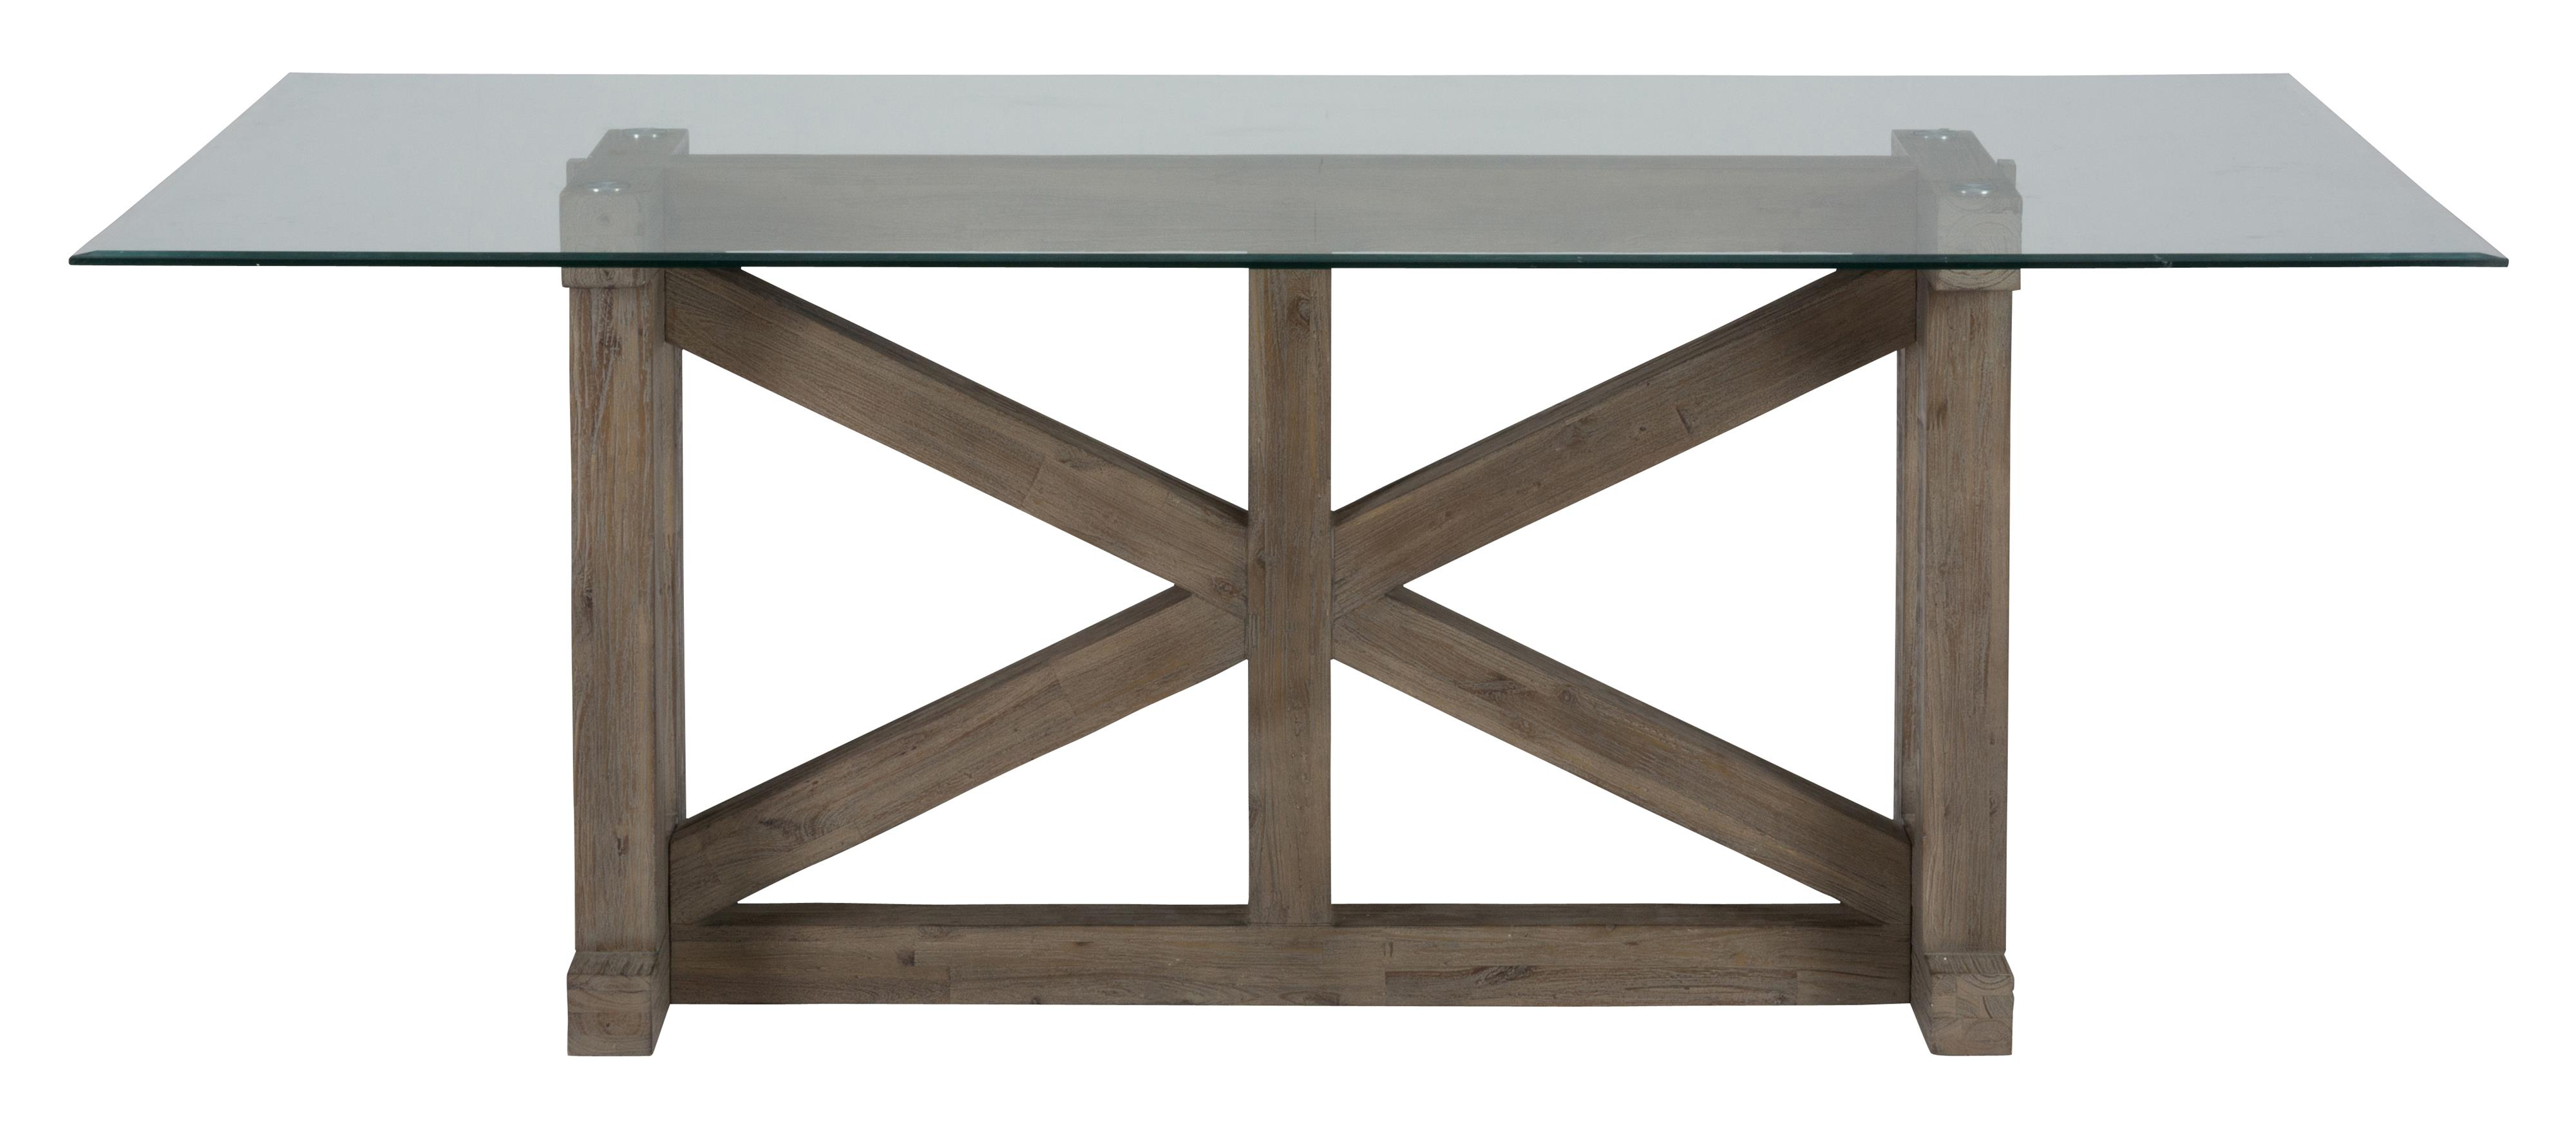 Jofran Hampton Hampton Sandblasted Table with Glass Top - Item Number: 872-78B+78G